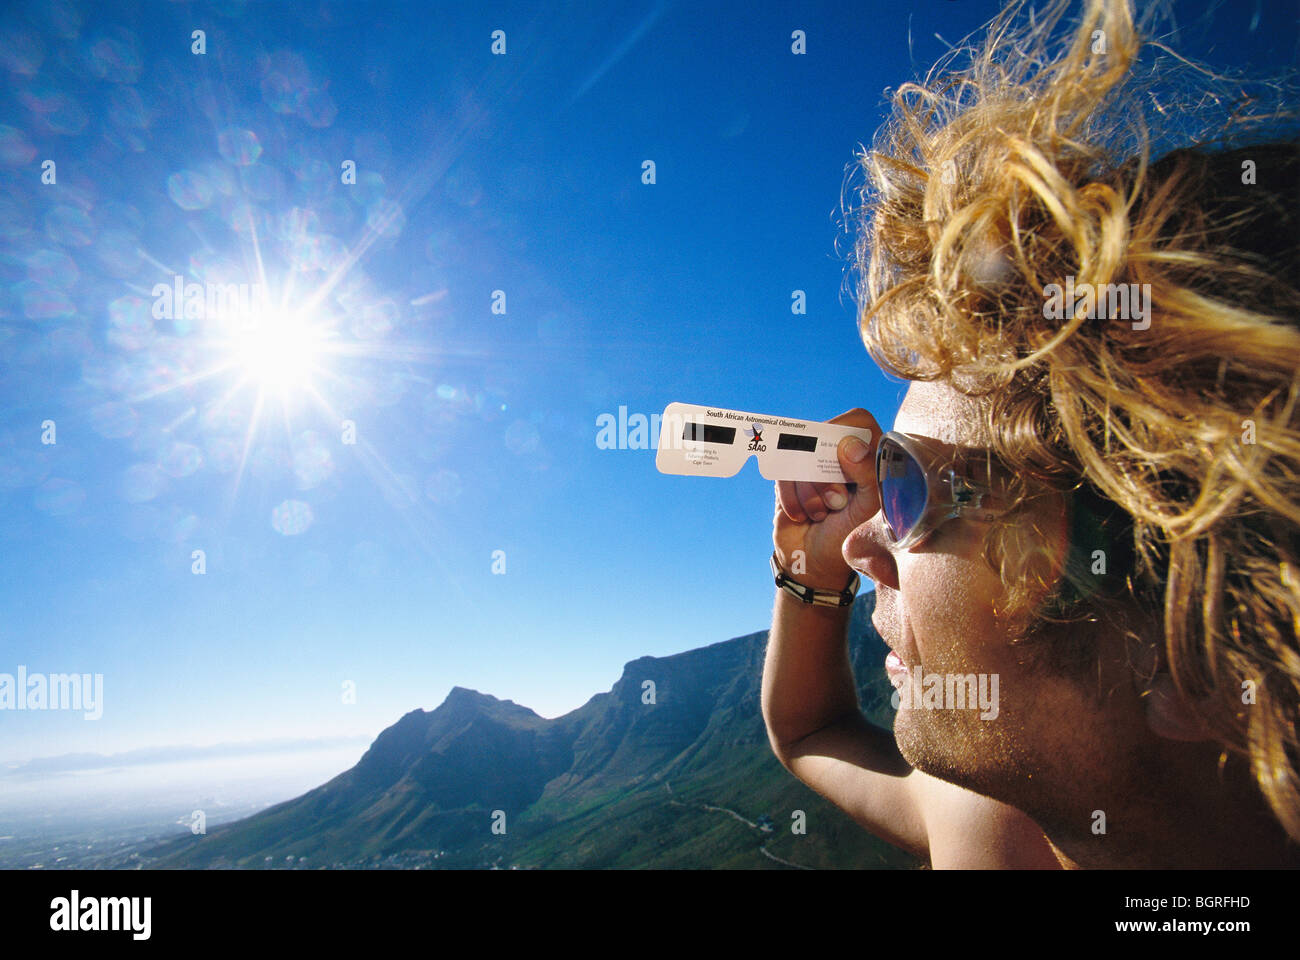 Man looking at a solar eclipse, South Africa. - Stock Image